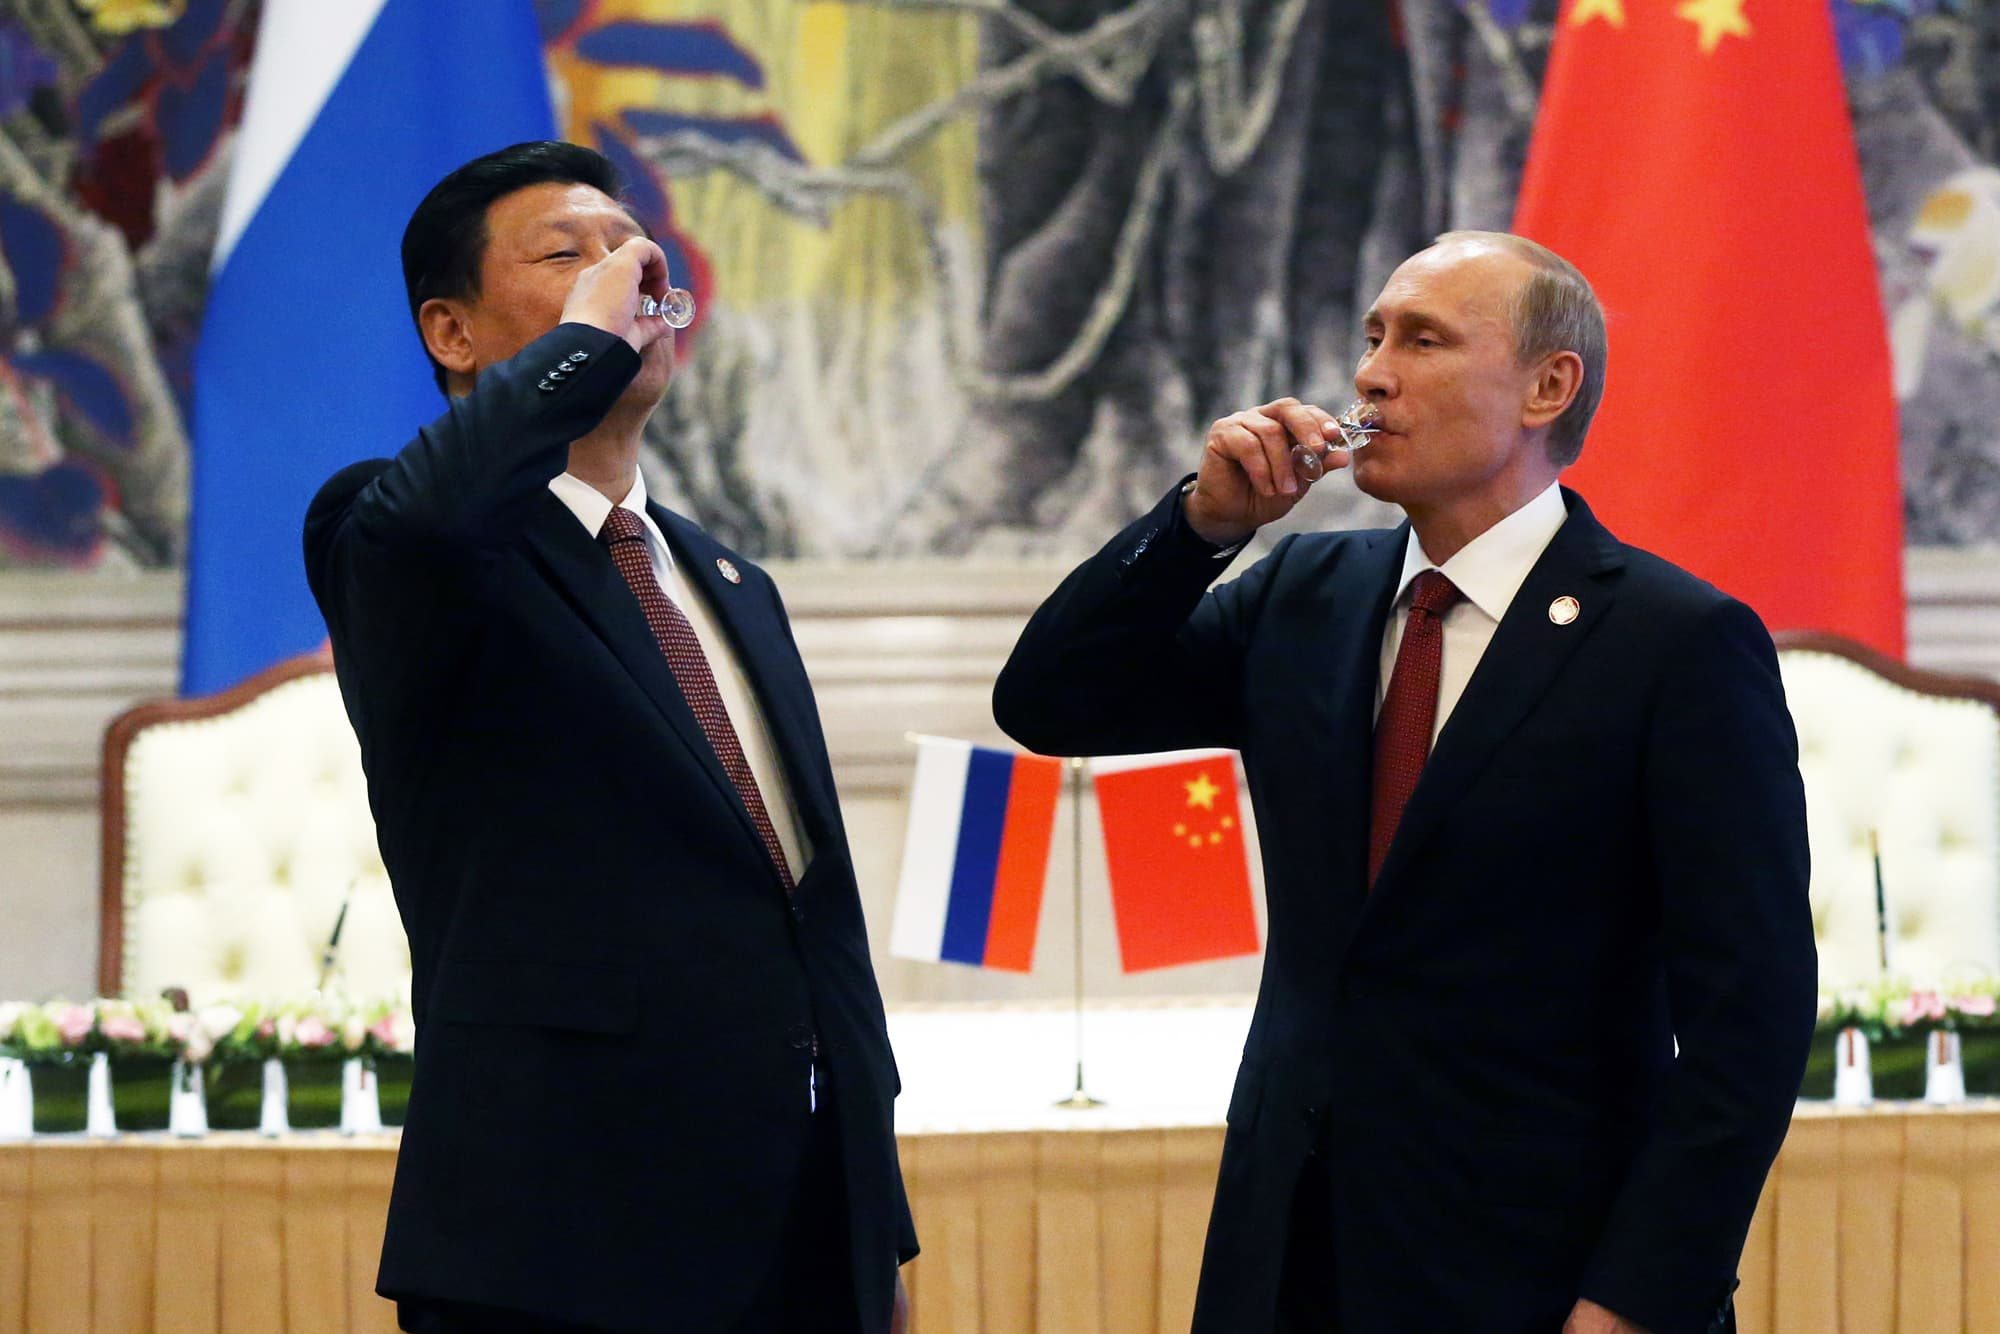 Russia is helping China to build a missile defense system, Putin says